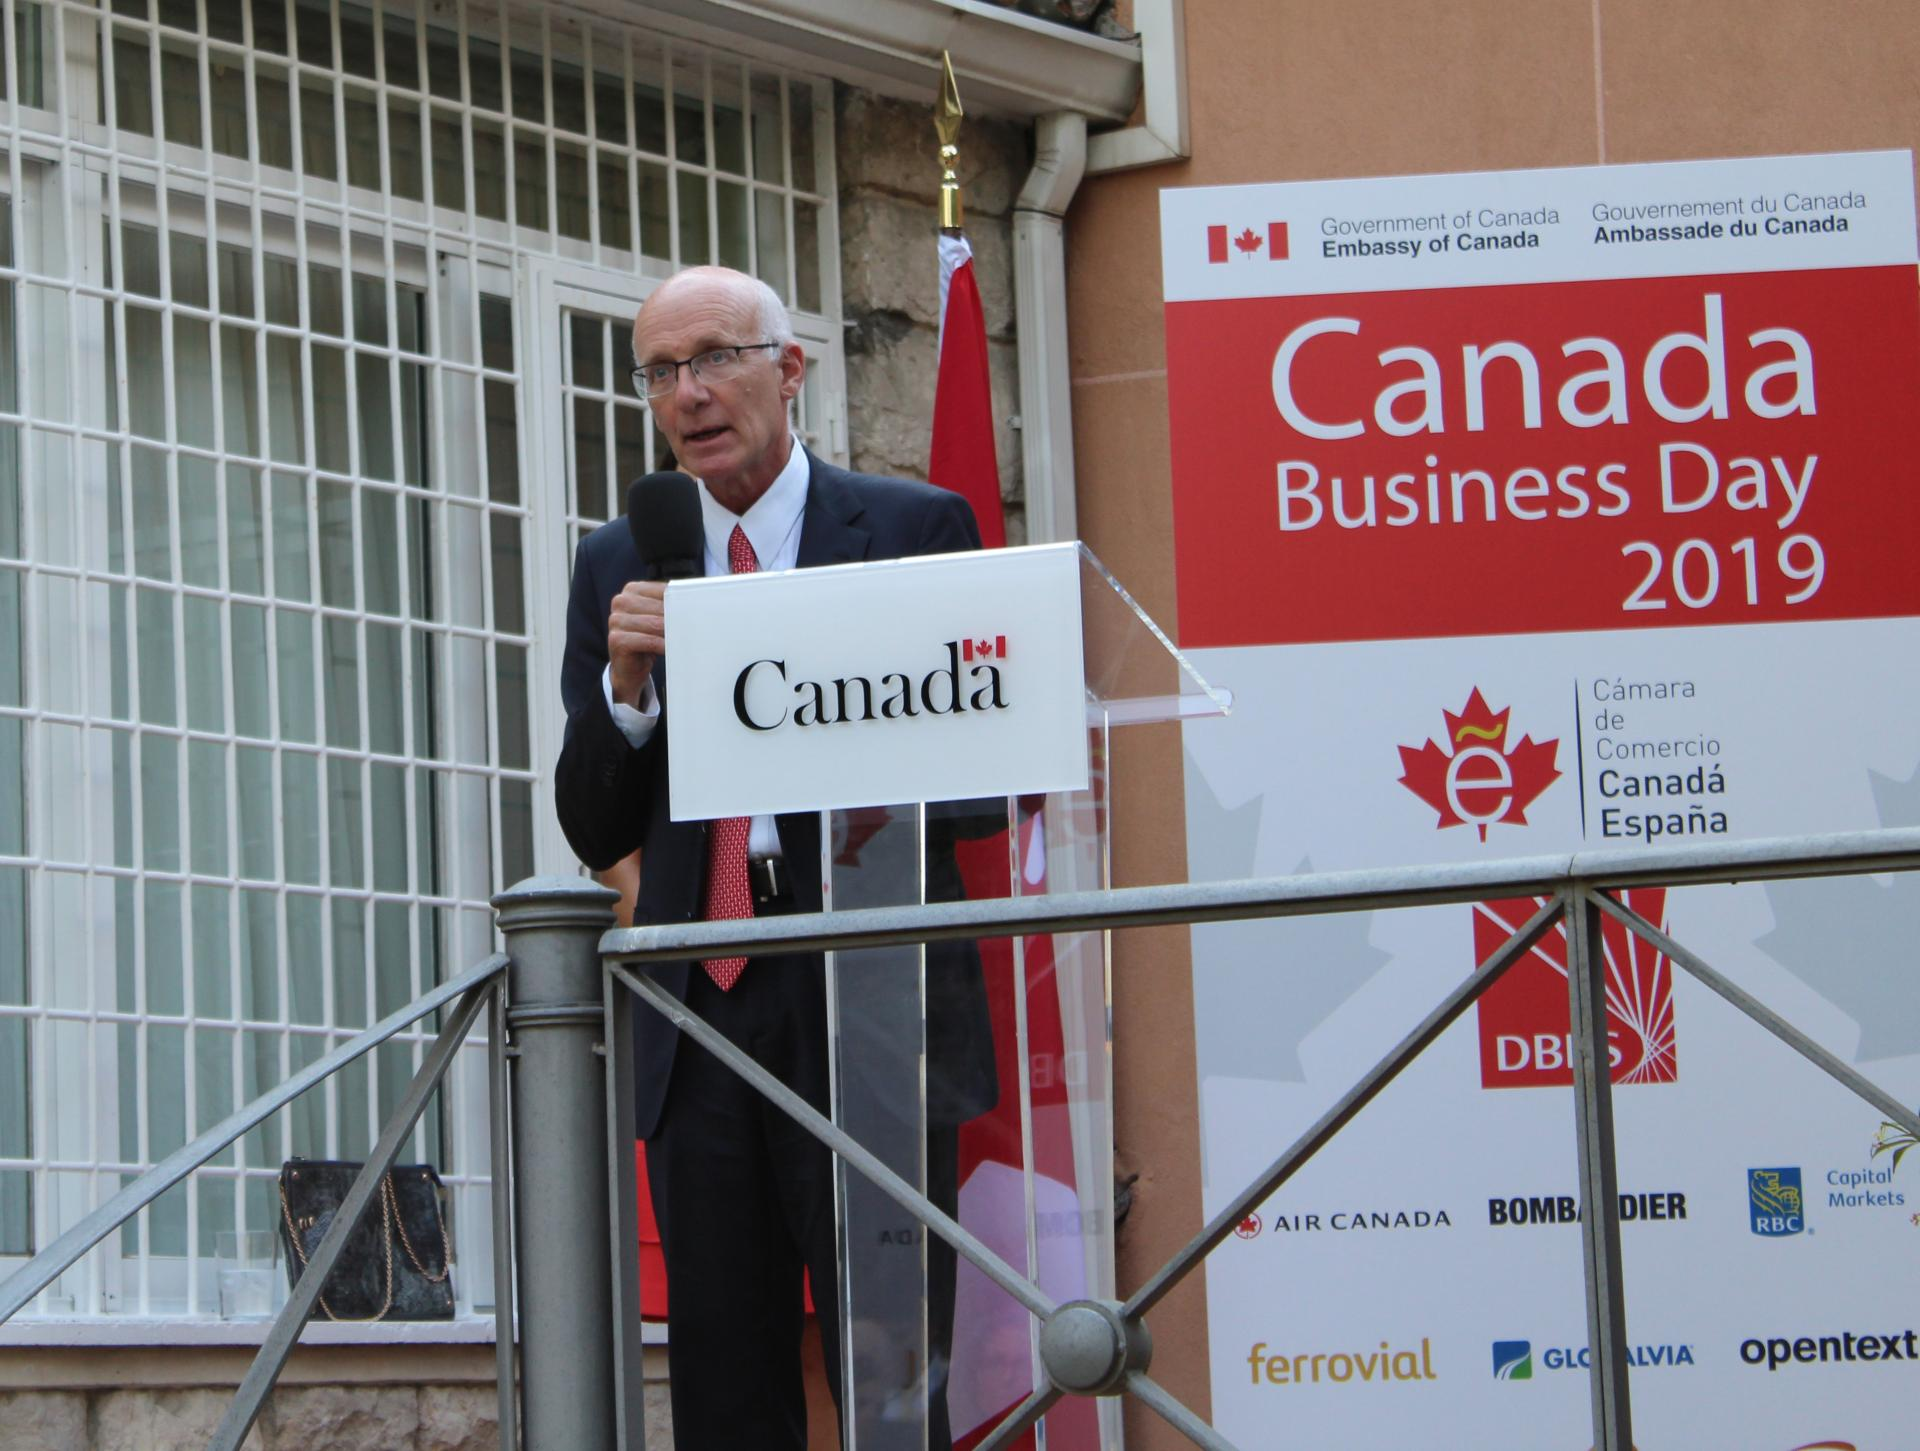 Canada Business Day